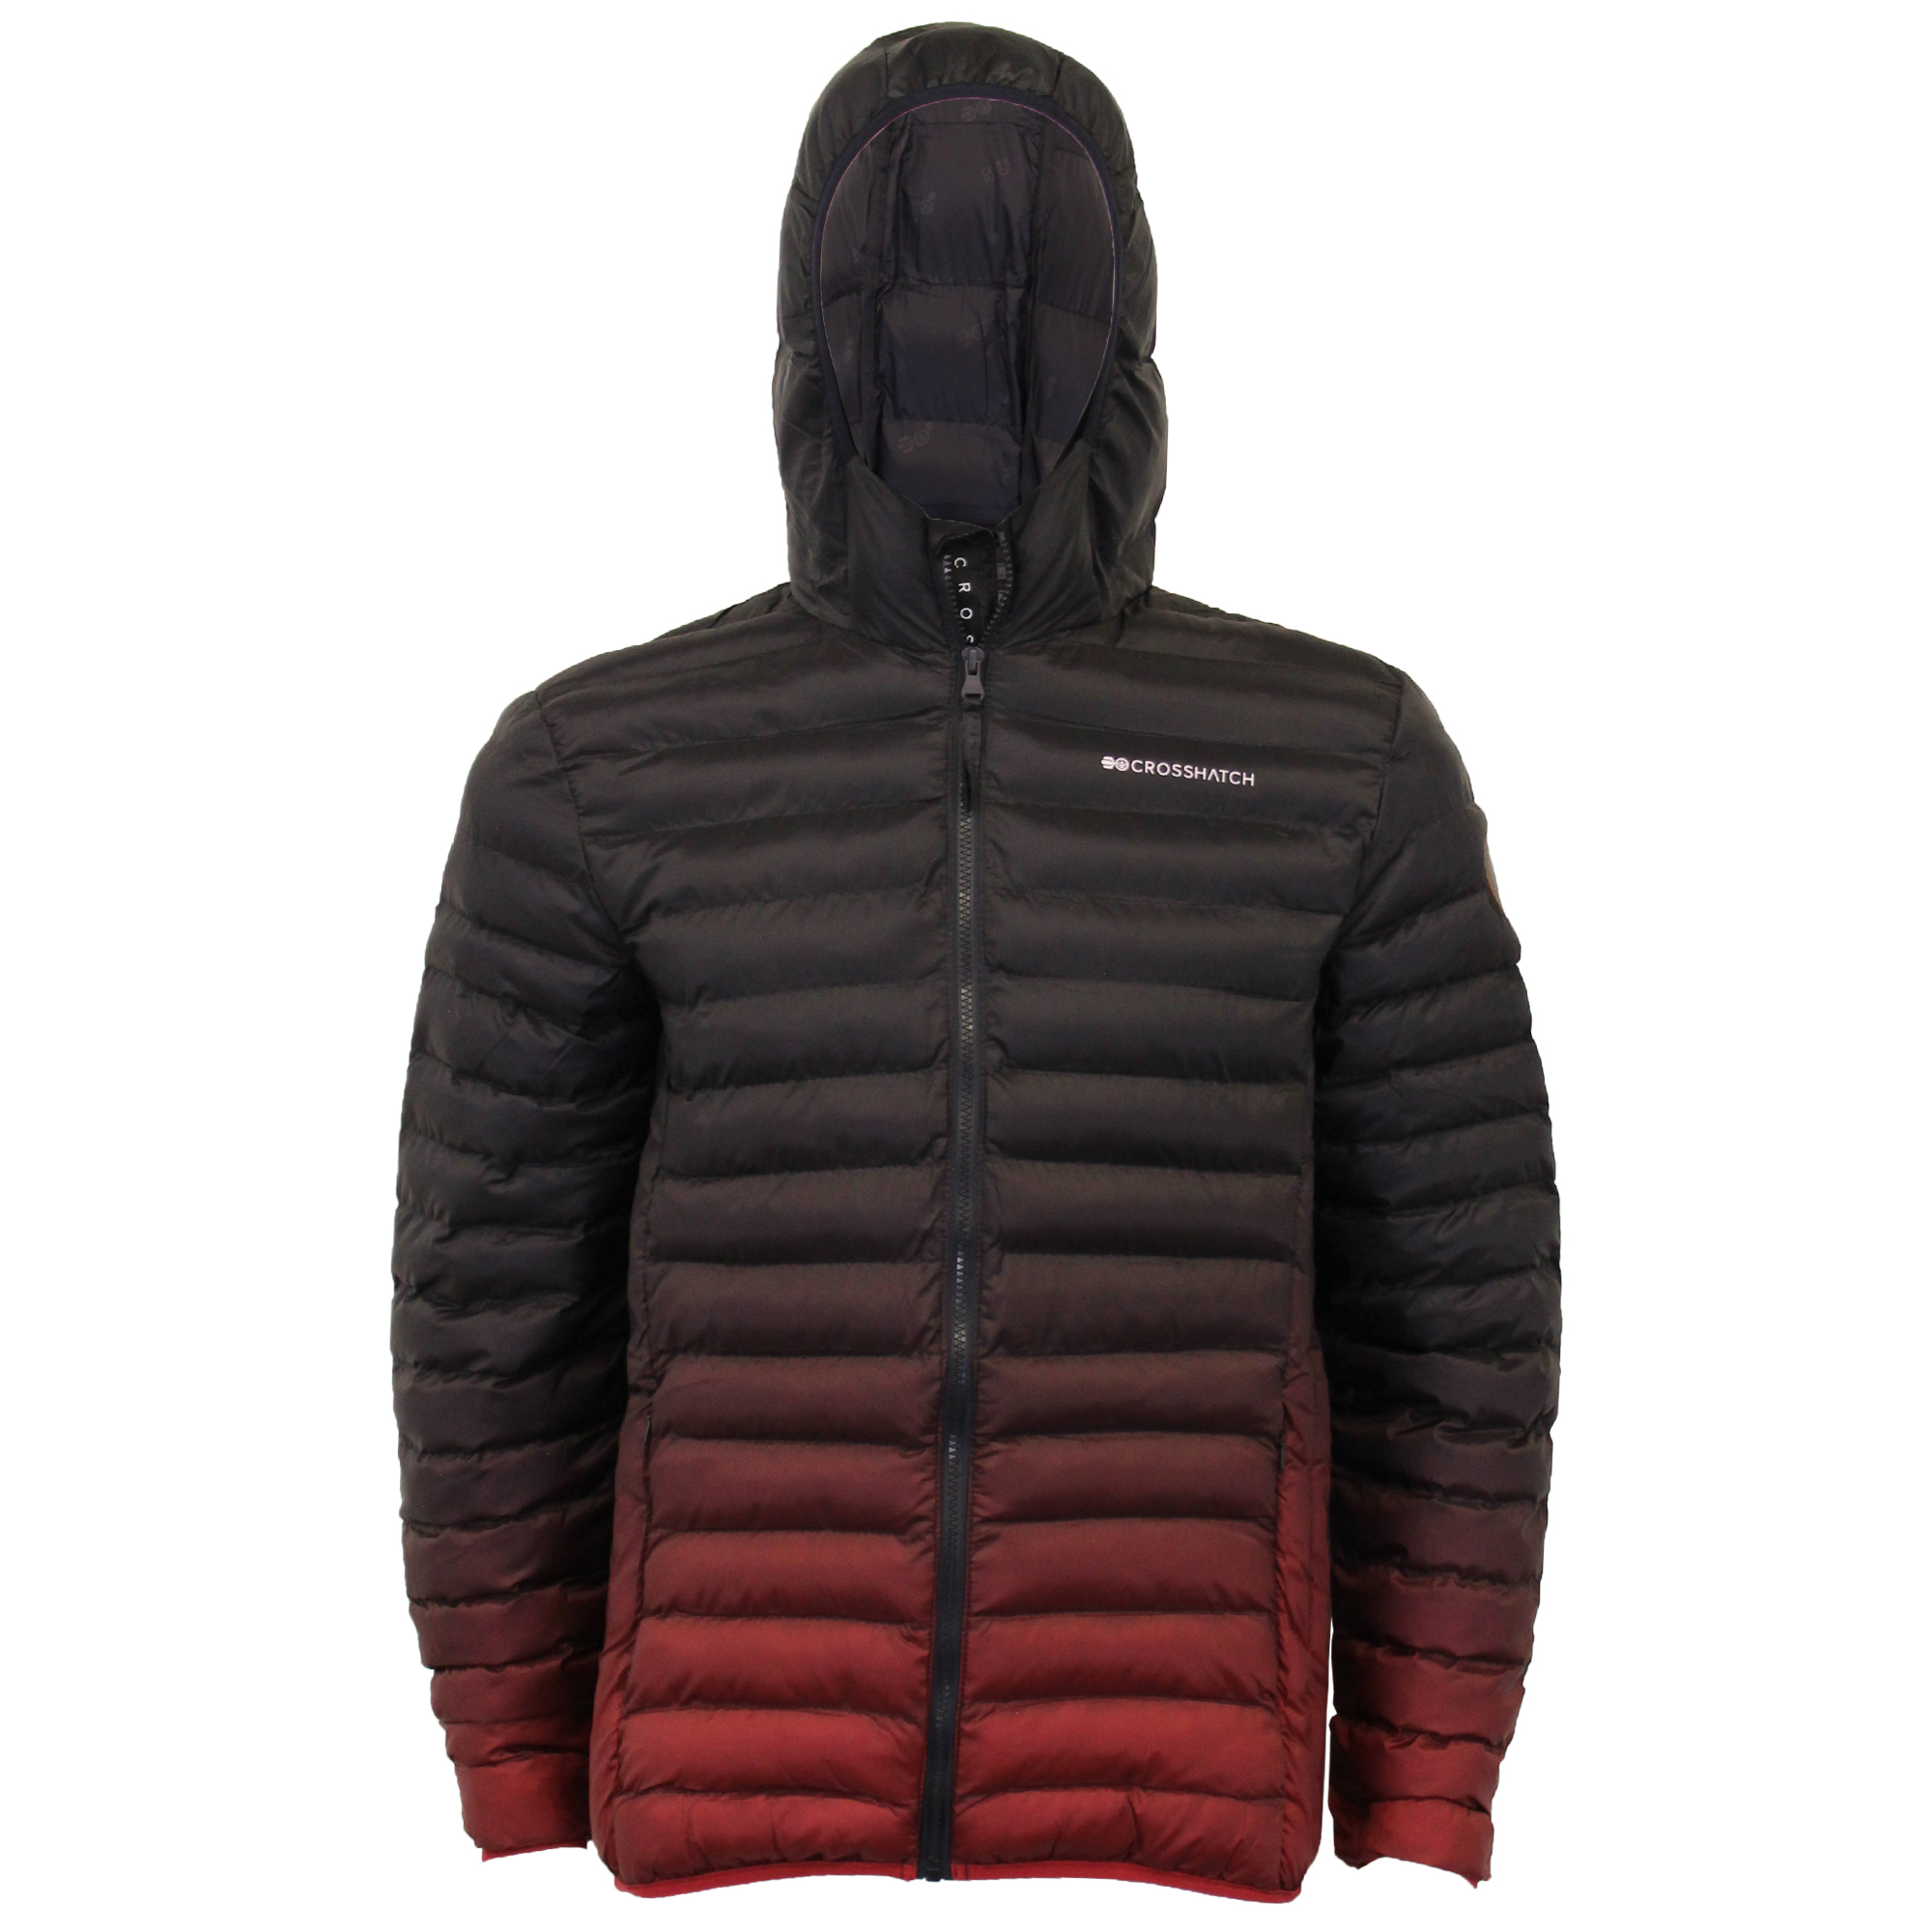 Mens-Jacket-Crosshatch-Hooded-Padded-Quilted-Two-Tone-FADEDOWN-Lined-Winter-New thumbnail 12